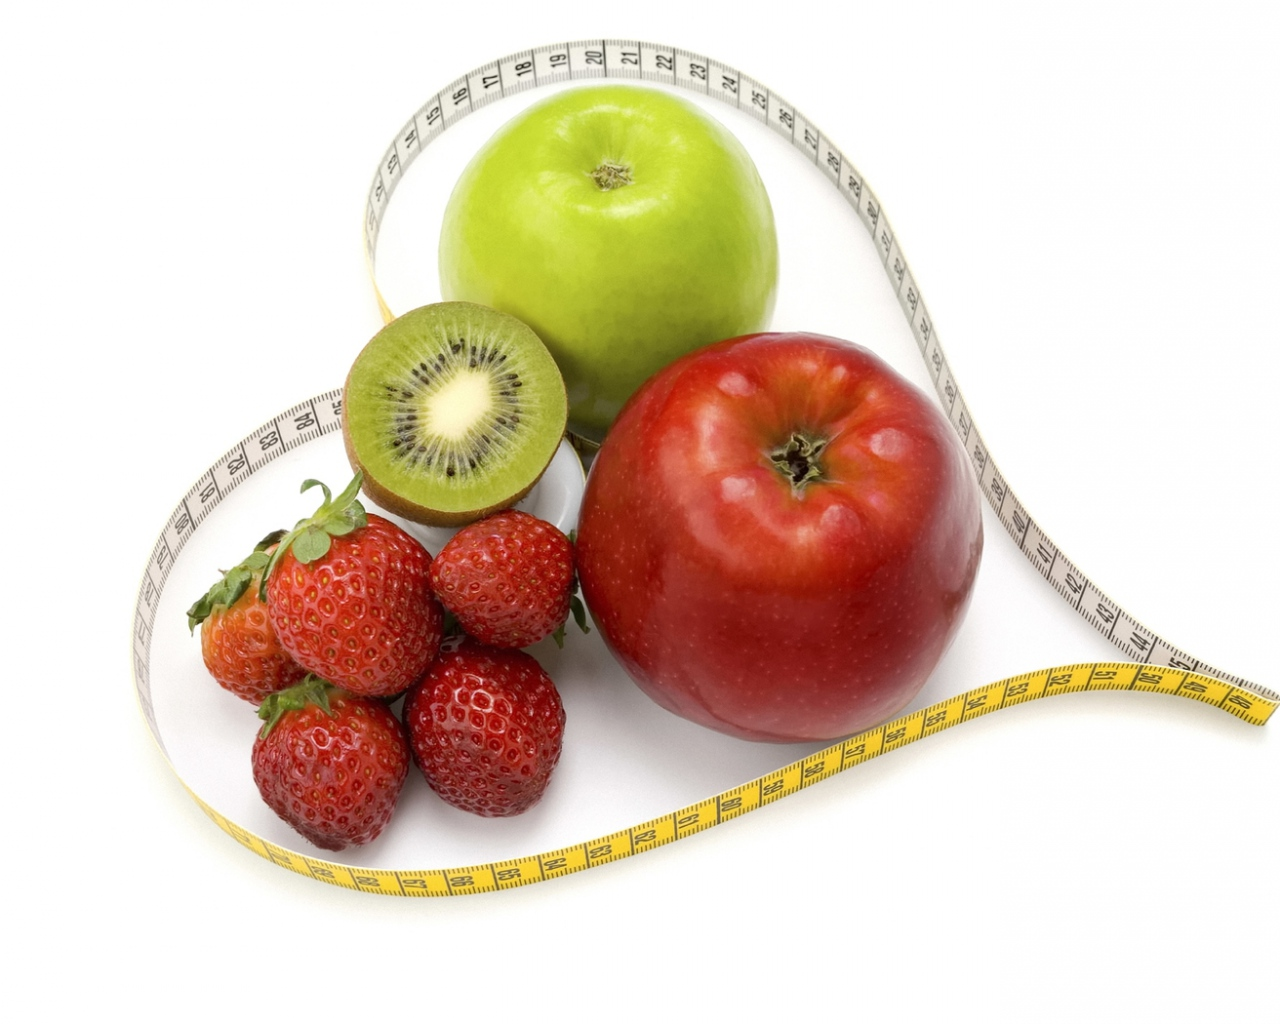 diet_centimeter_apples_kiwi_strawberry_43835_1280x1024